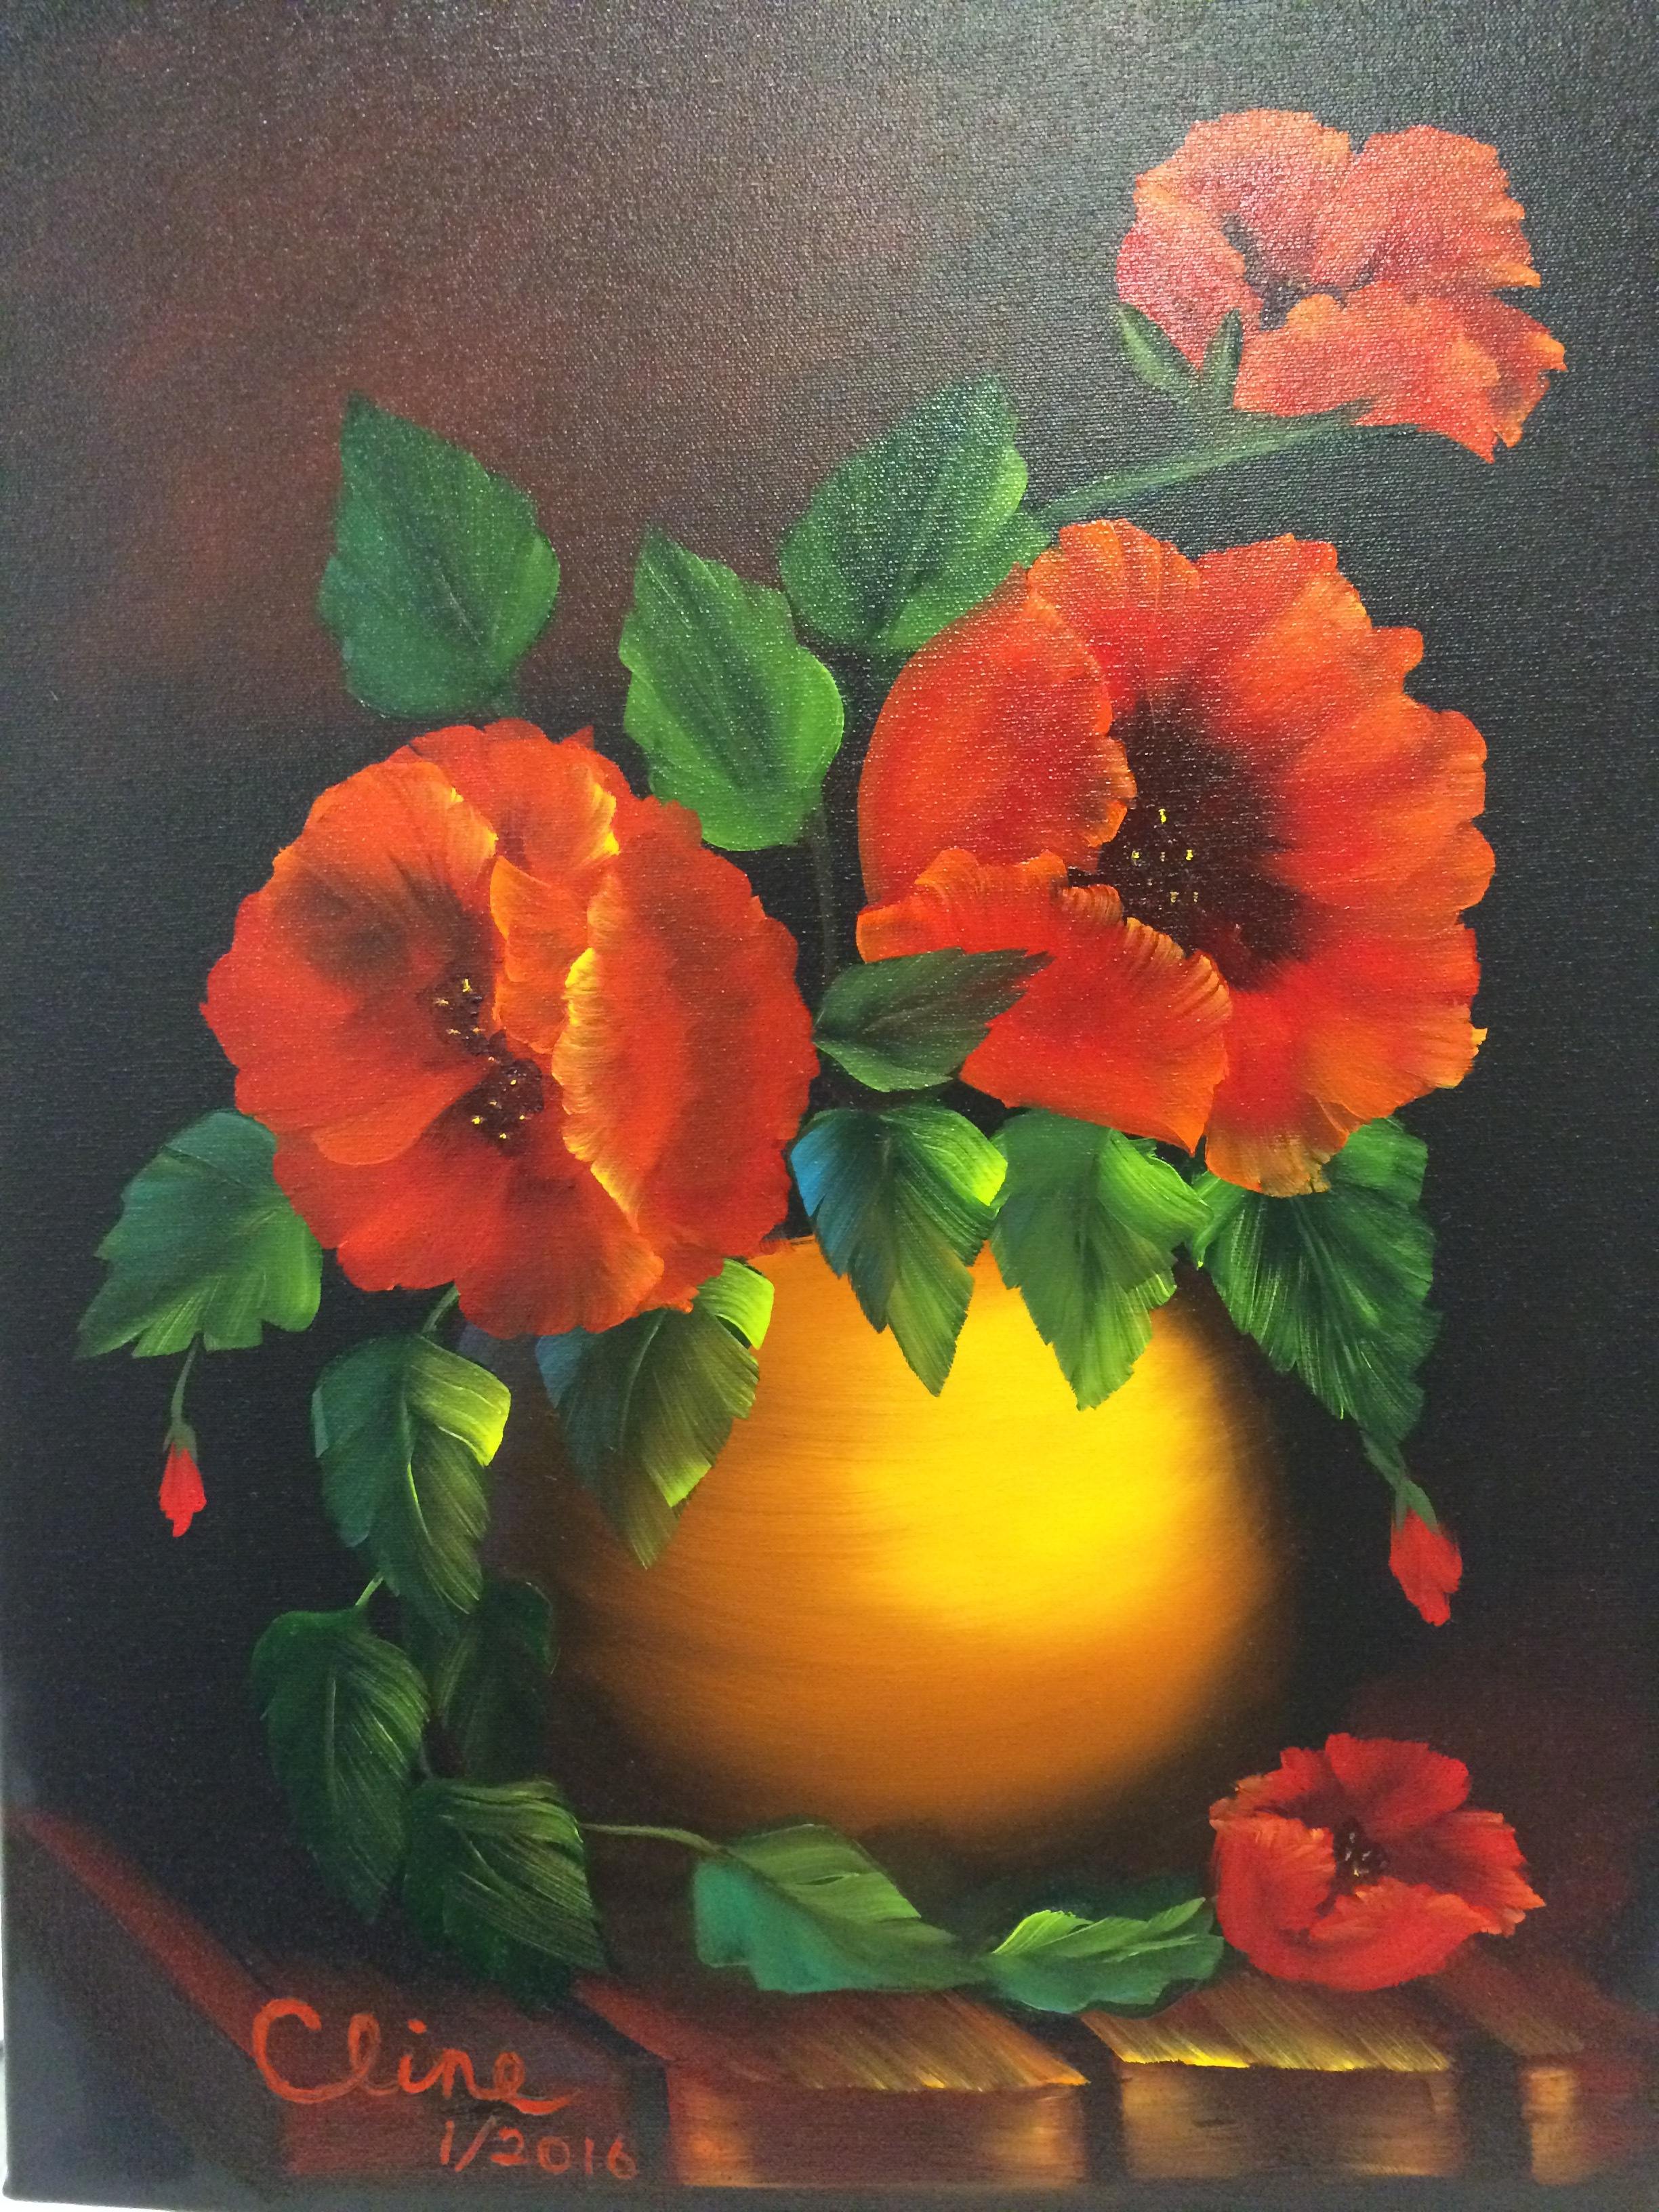 Red Poppies in a Clay Pot